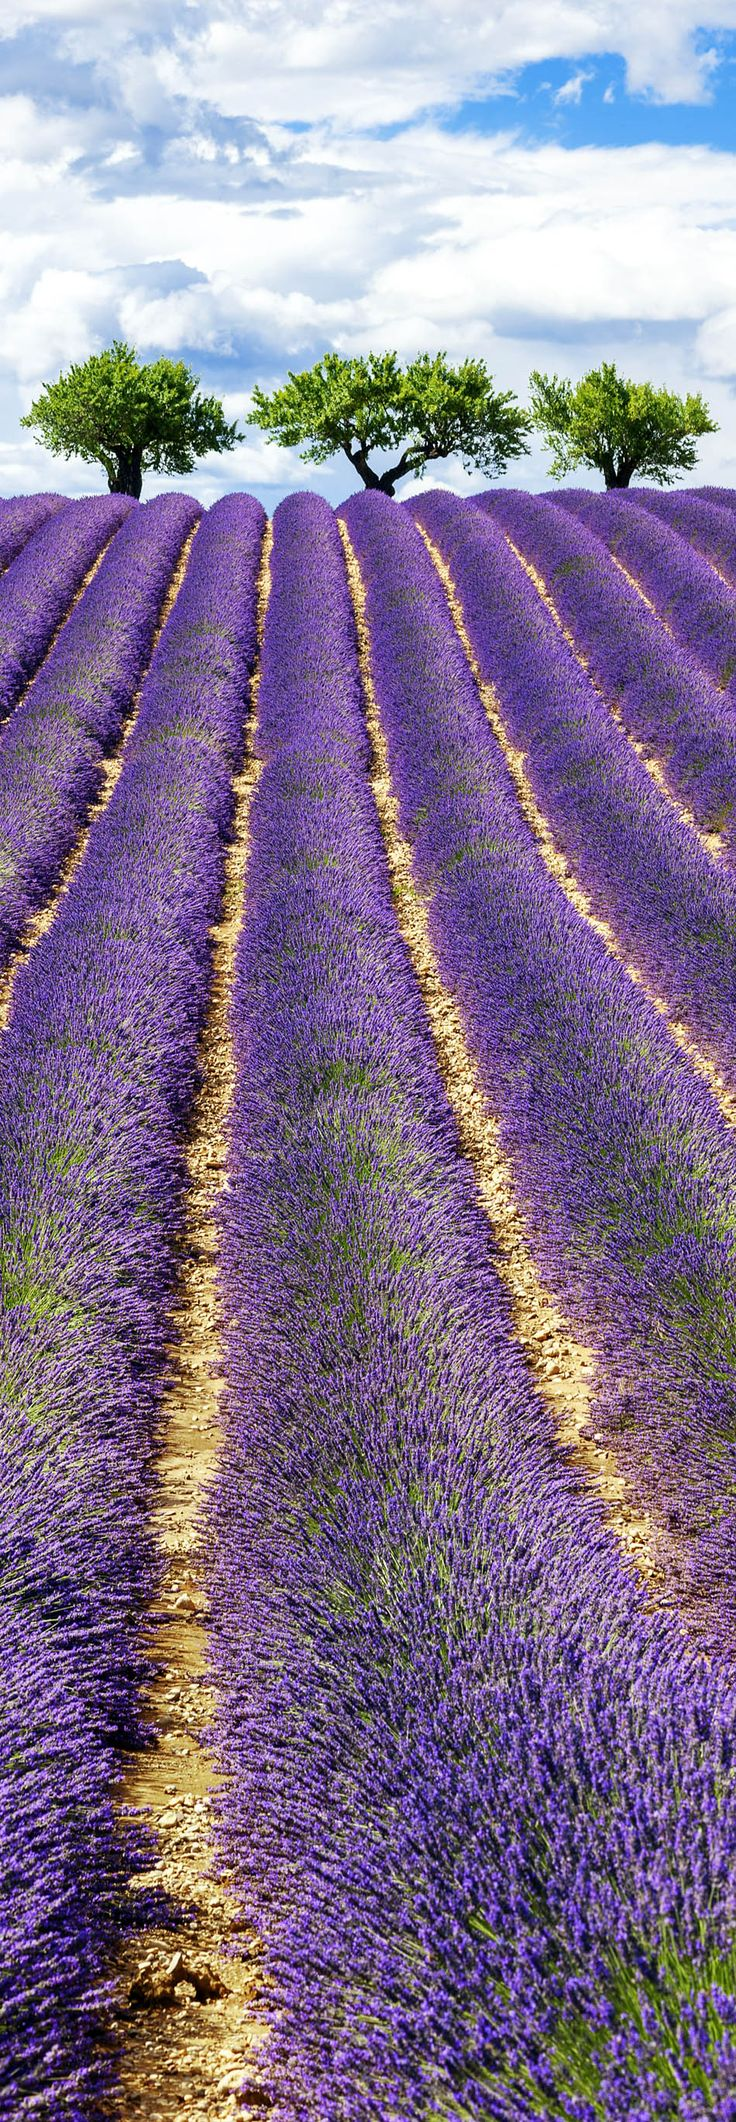 Famous View of Lavender Field with Cloudy Sky in Provence, France    |   13 Amazing Photos of Lavender Fields that will Rock your World